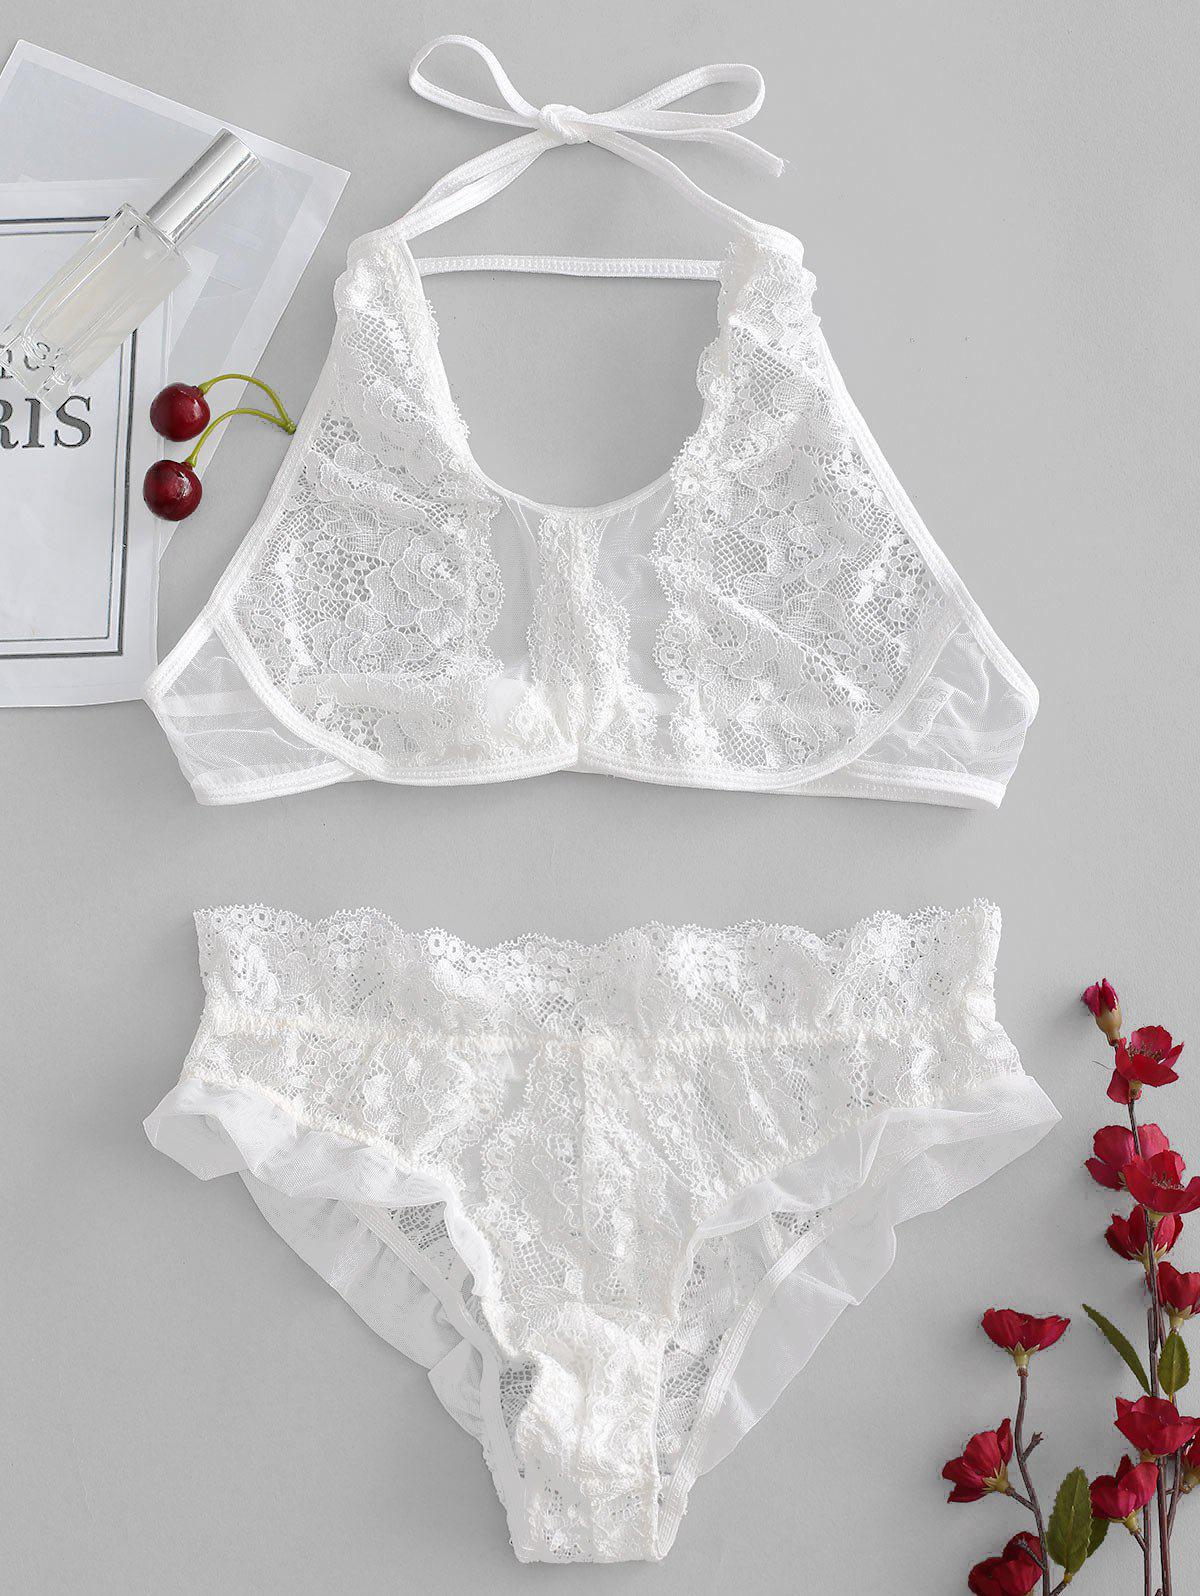 Halter Sheer Lace Bra and Panty Lingerie Set